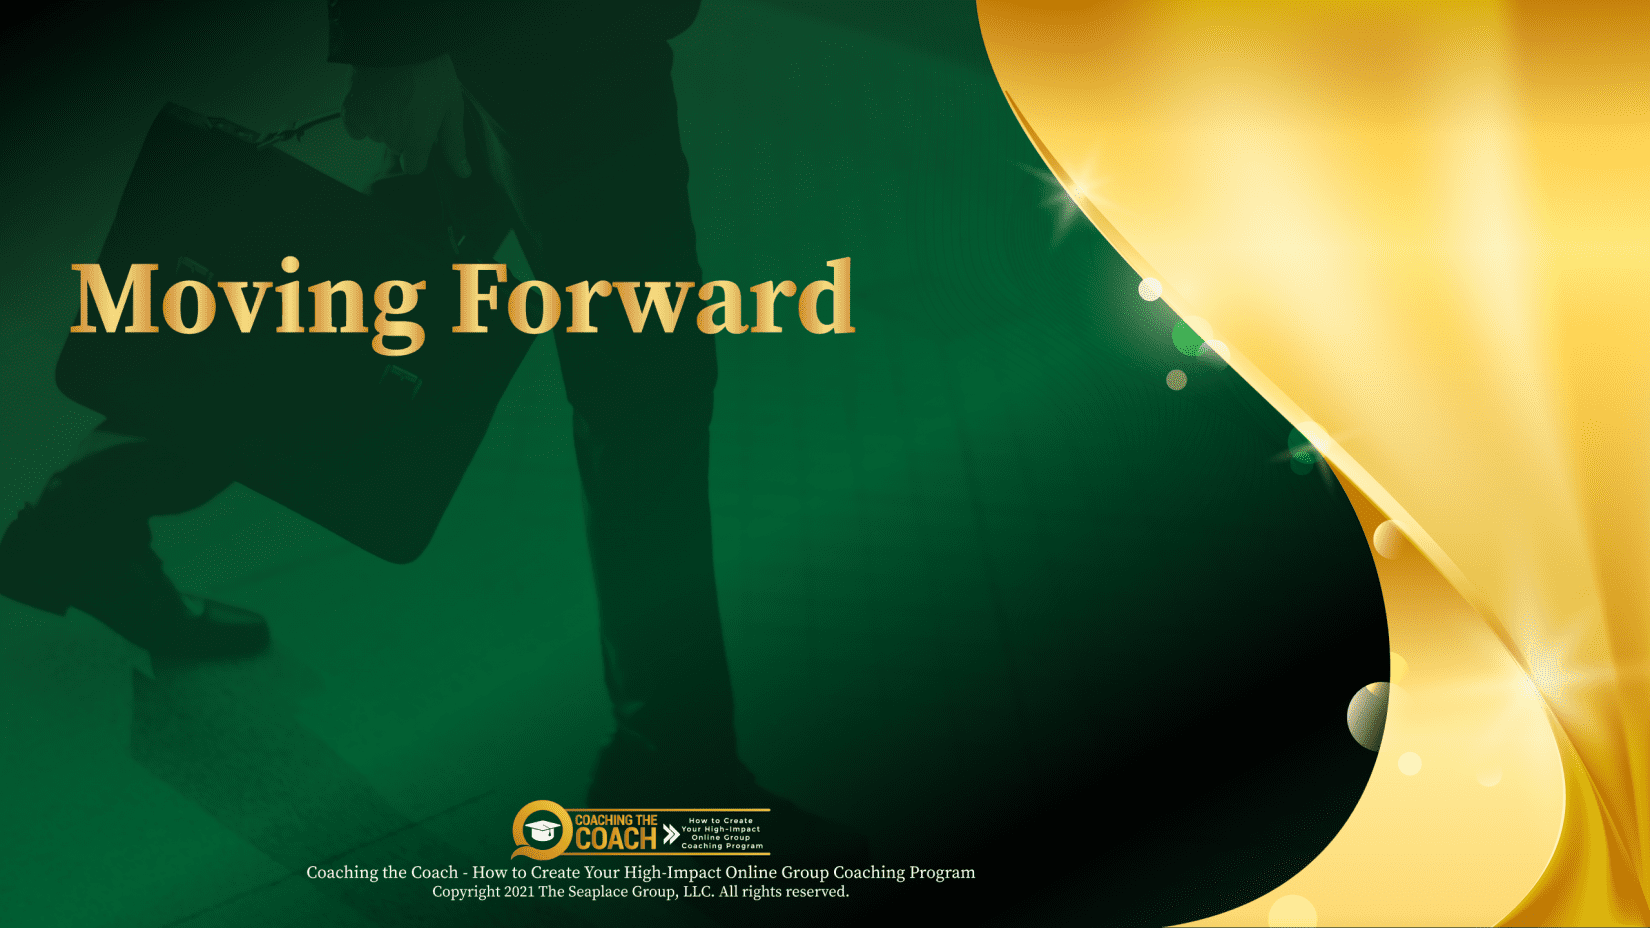 Moving Forward Unit Cover Image